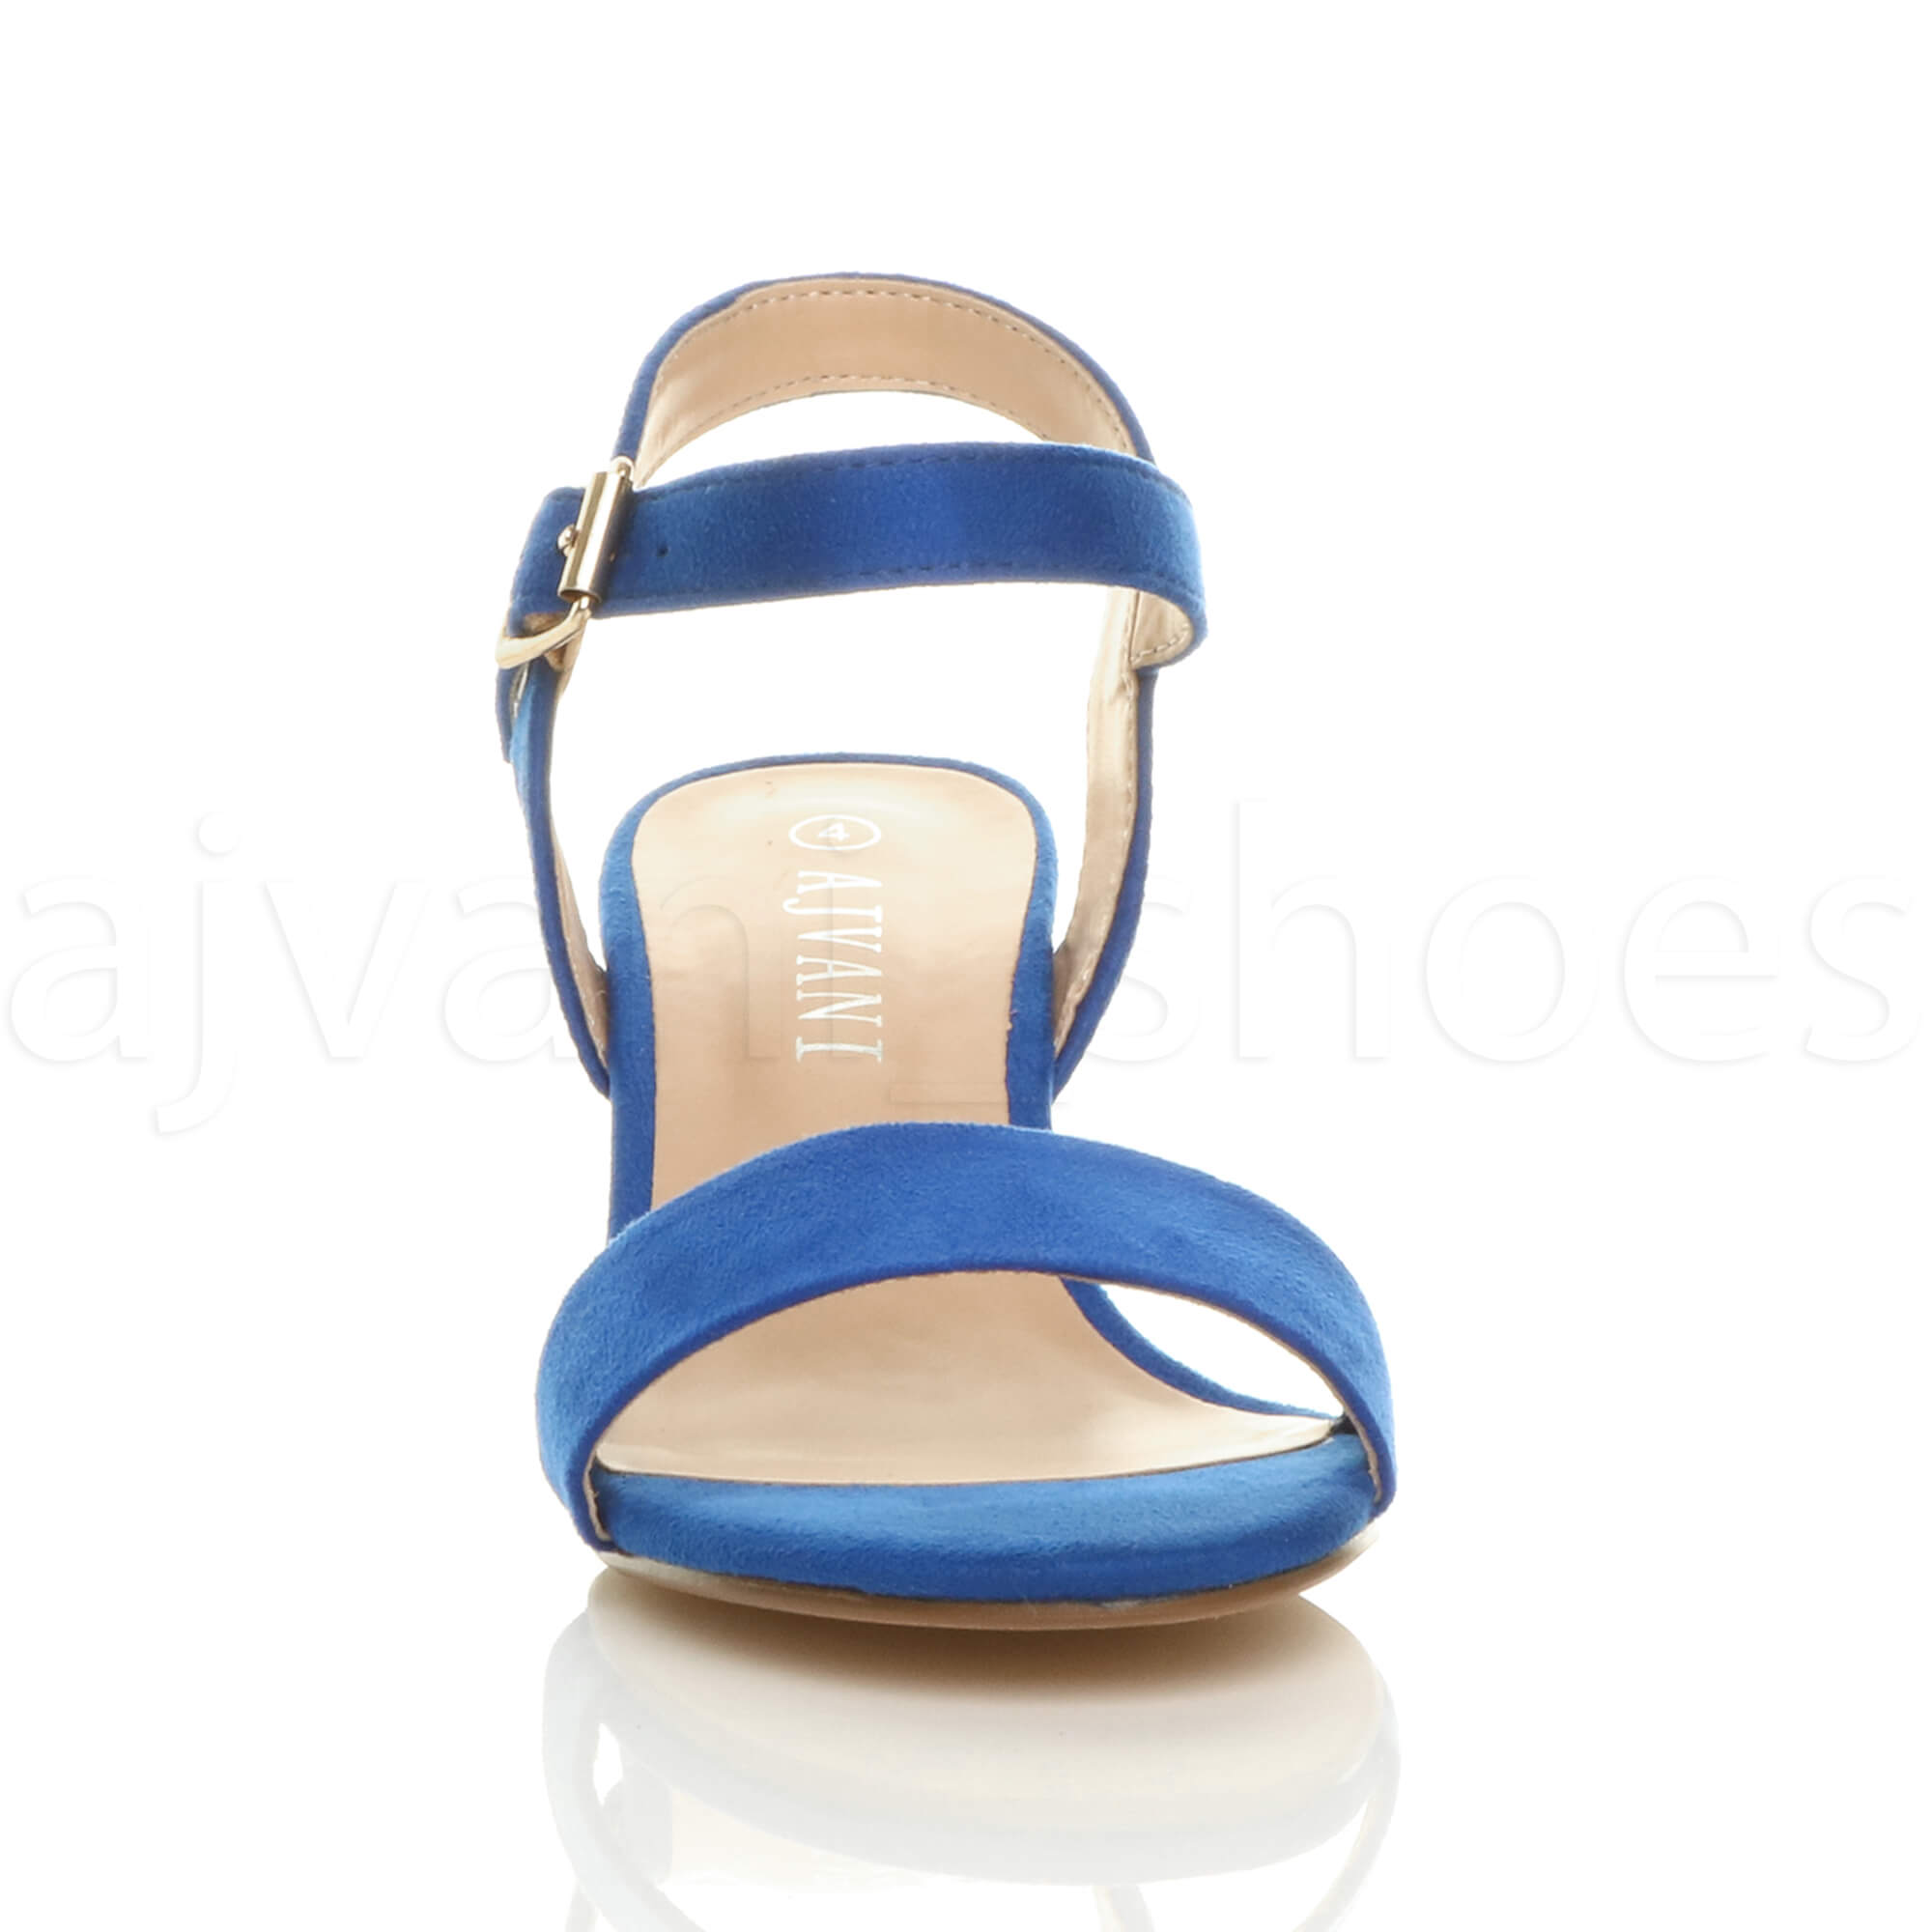 WOMENS-LADIES-MID-LOW-BLOCK-HEEL-PEEP-TOE-ANKLE-STRAP-STRAPPY-PARTY-SANDALS-SIZE thumbnail 39